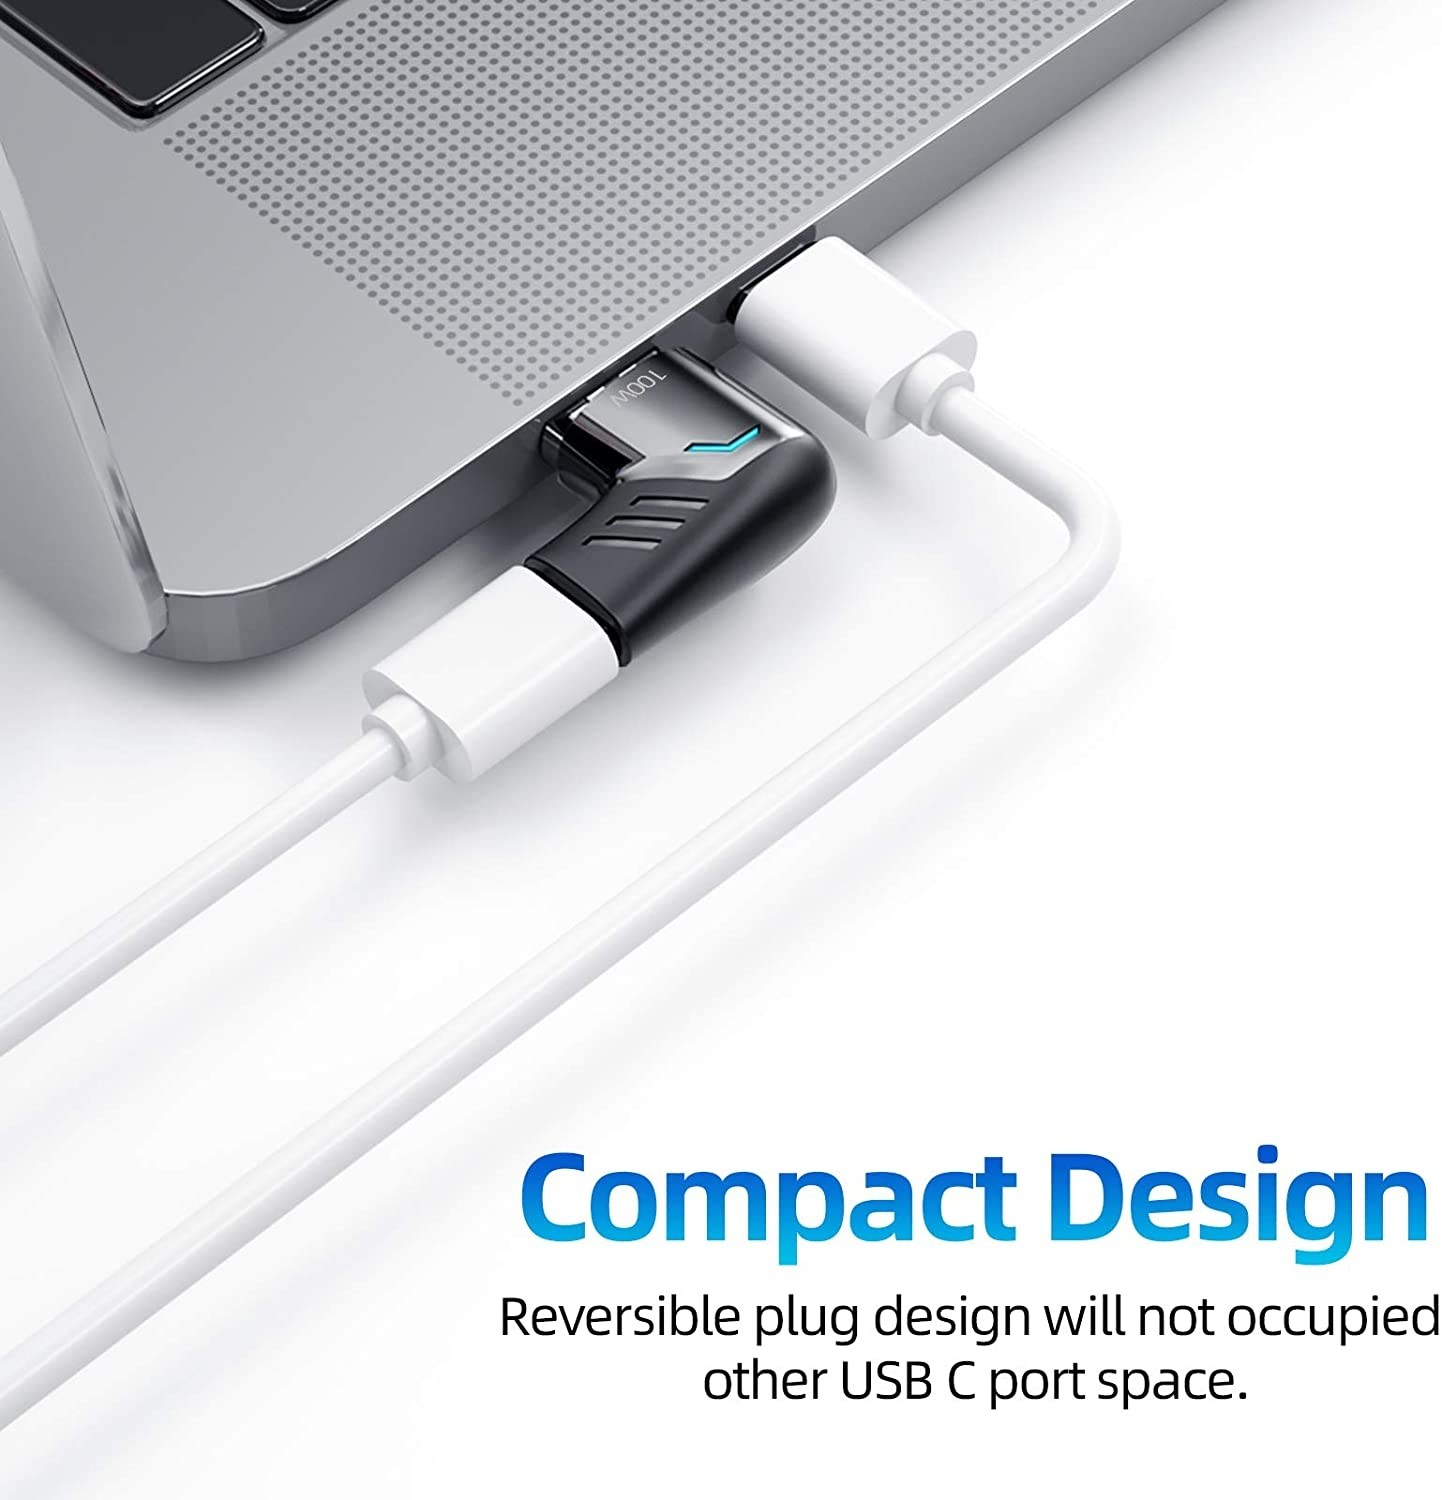 USB-C 100W Sync & Charge Magnetic Adapter for USB-C iPad/Laptop/MacBook, B08KZJ3KMR